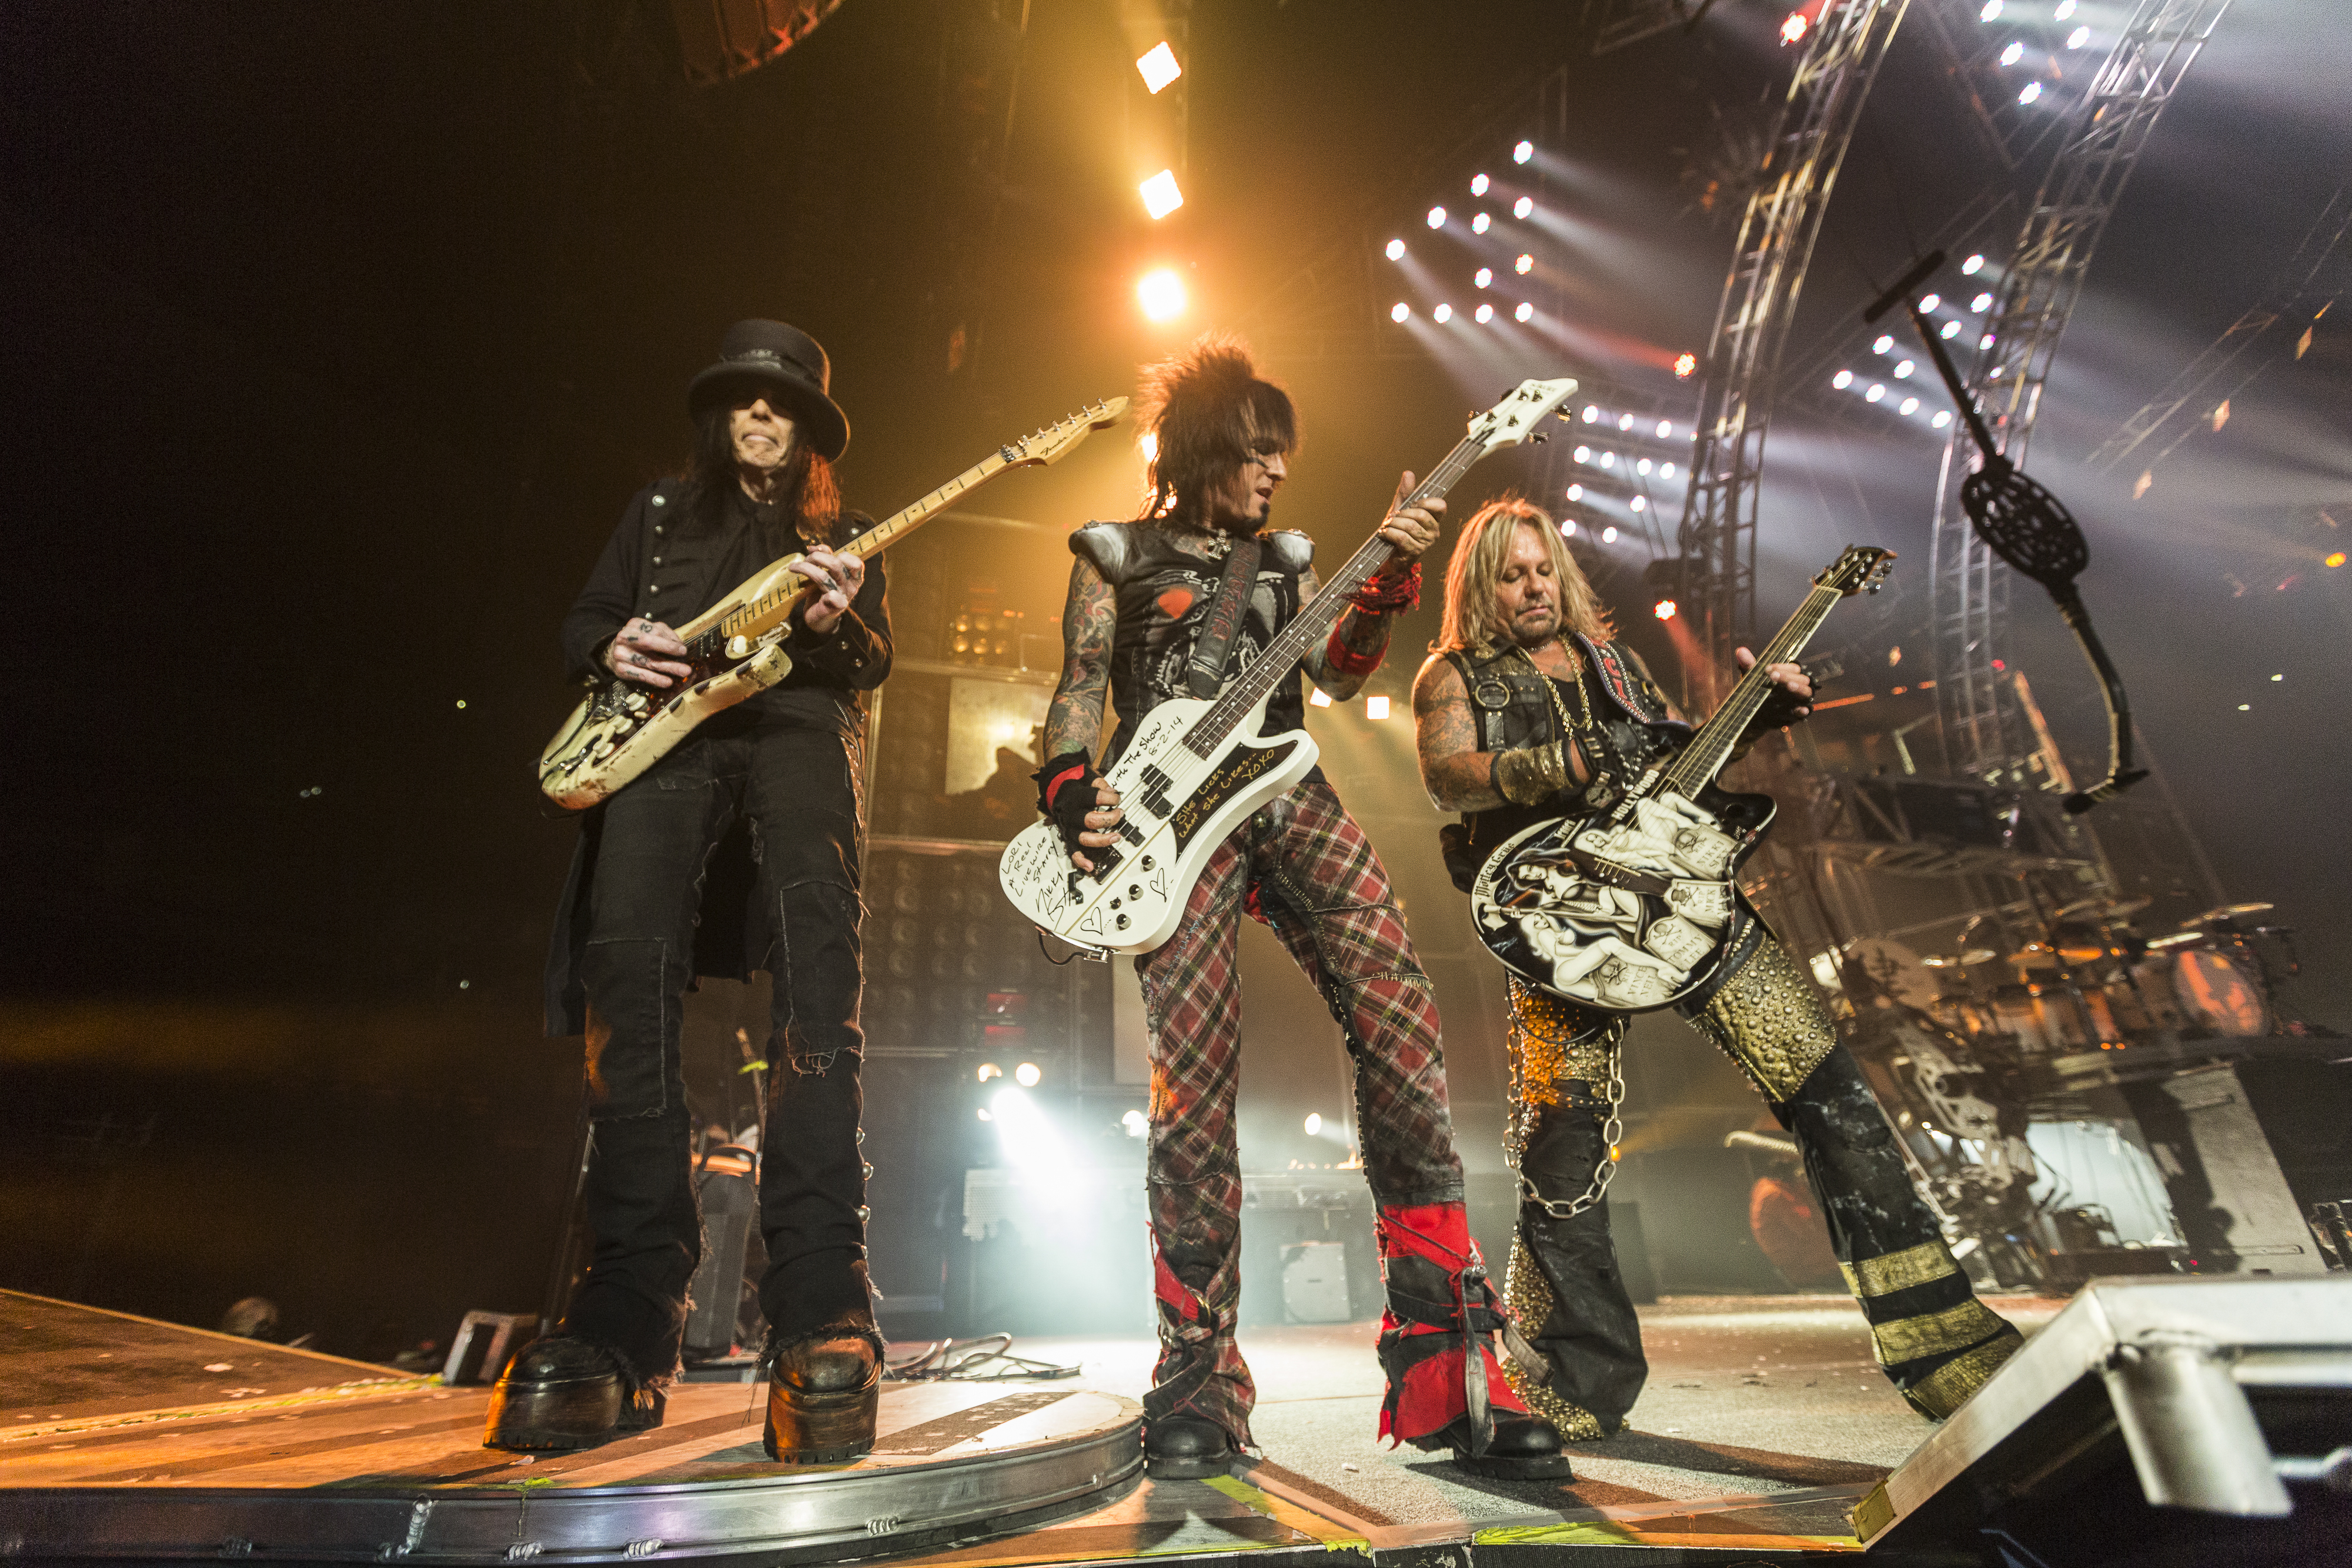 19 Things We Learned Hanging Out Backstage With Mötley Crüe